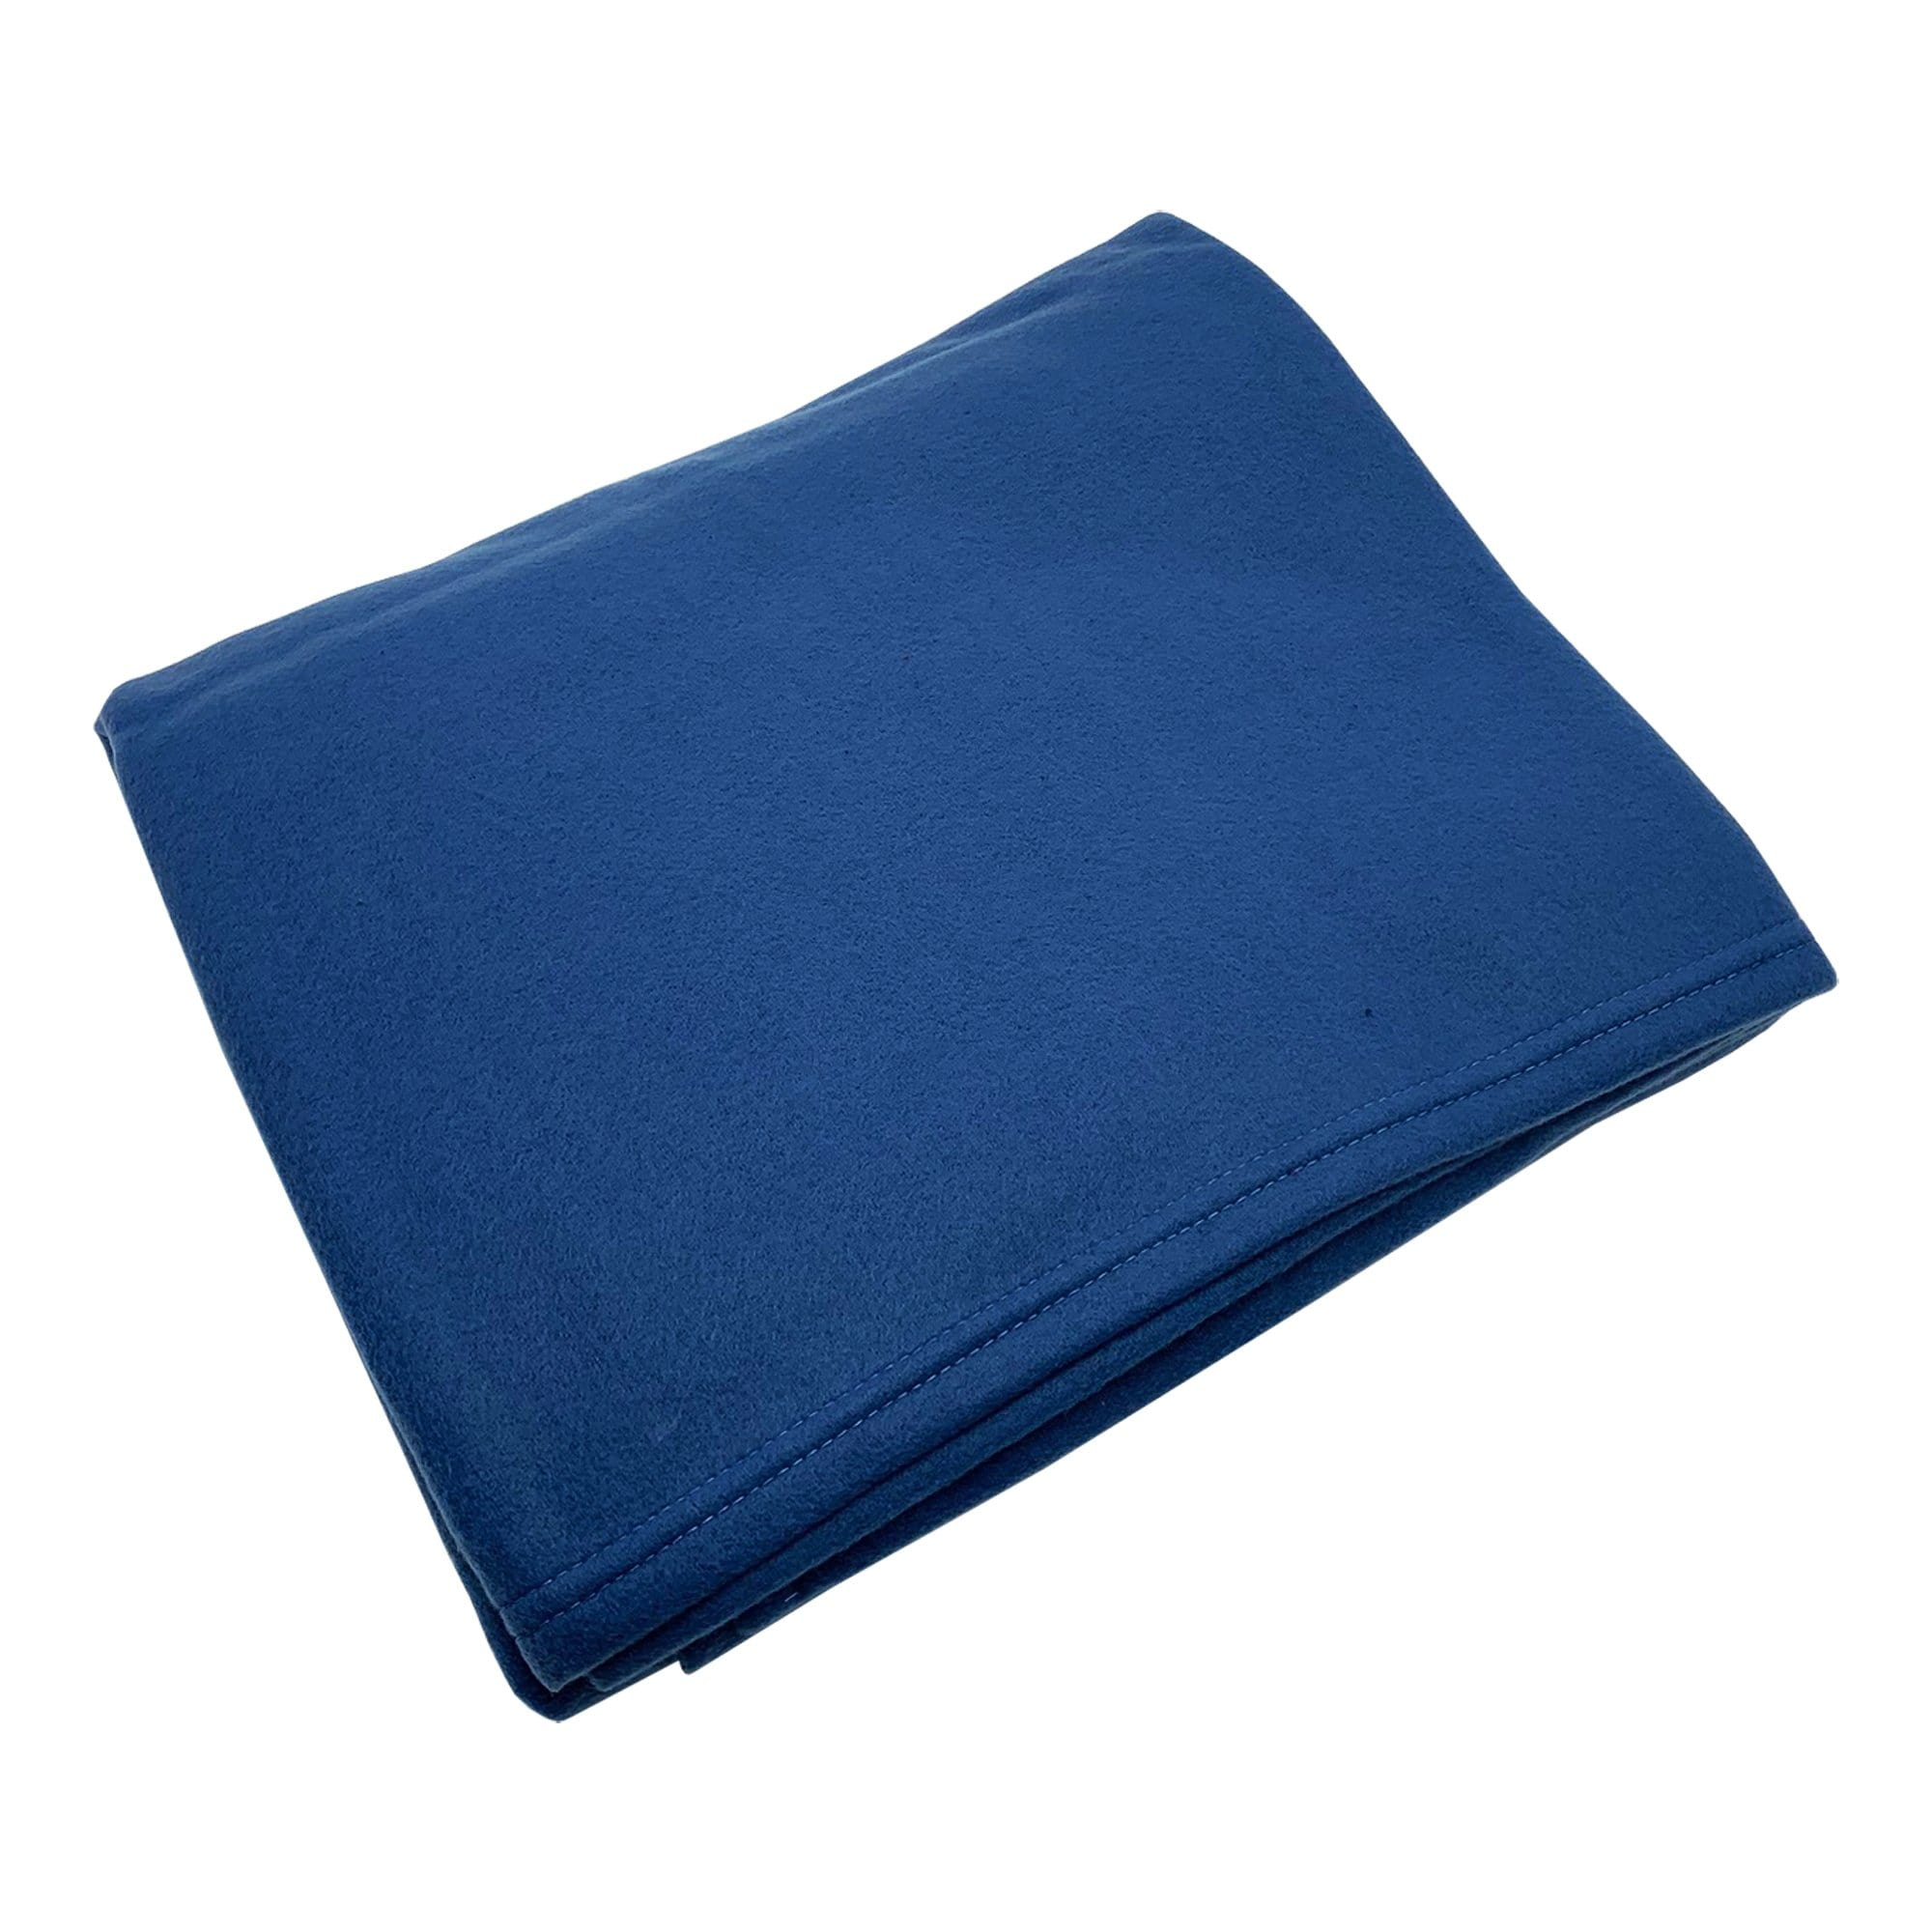 Blue Fleece Blanket